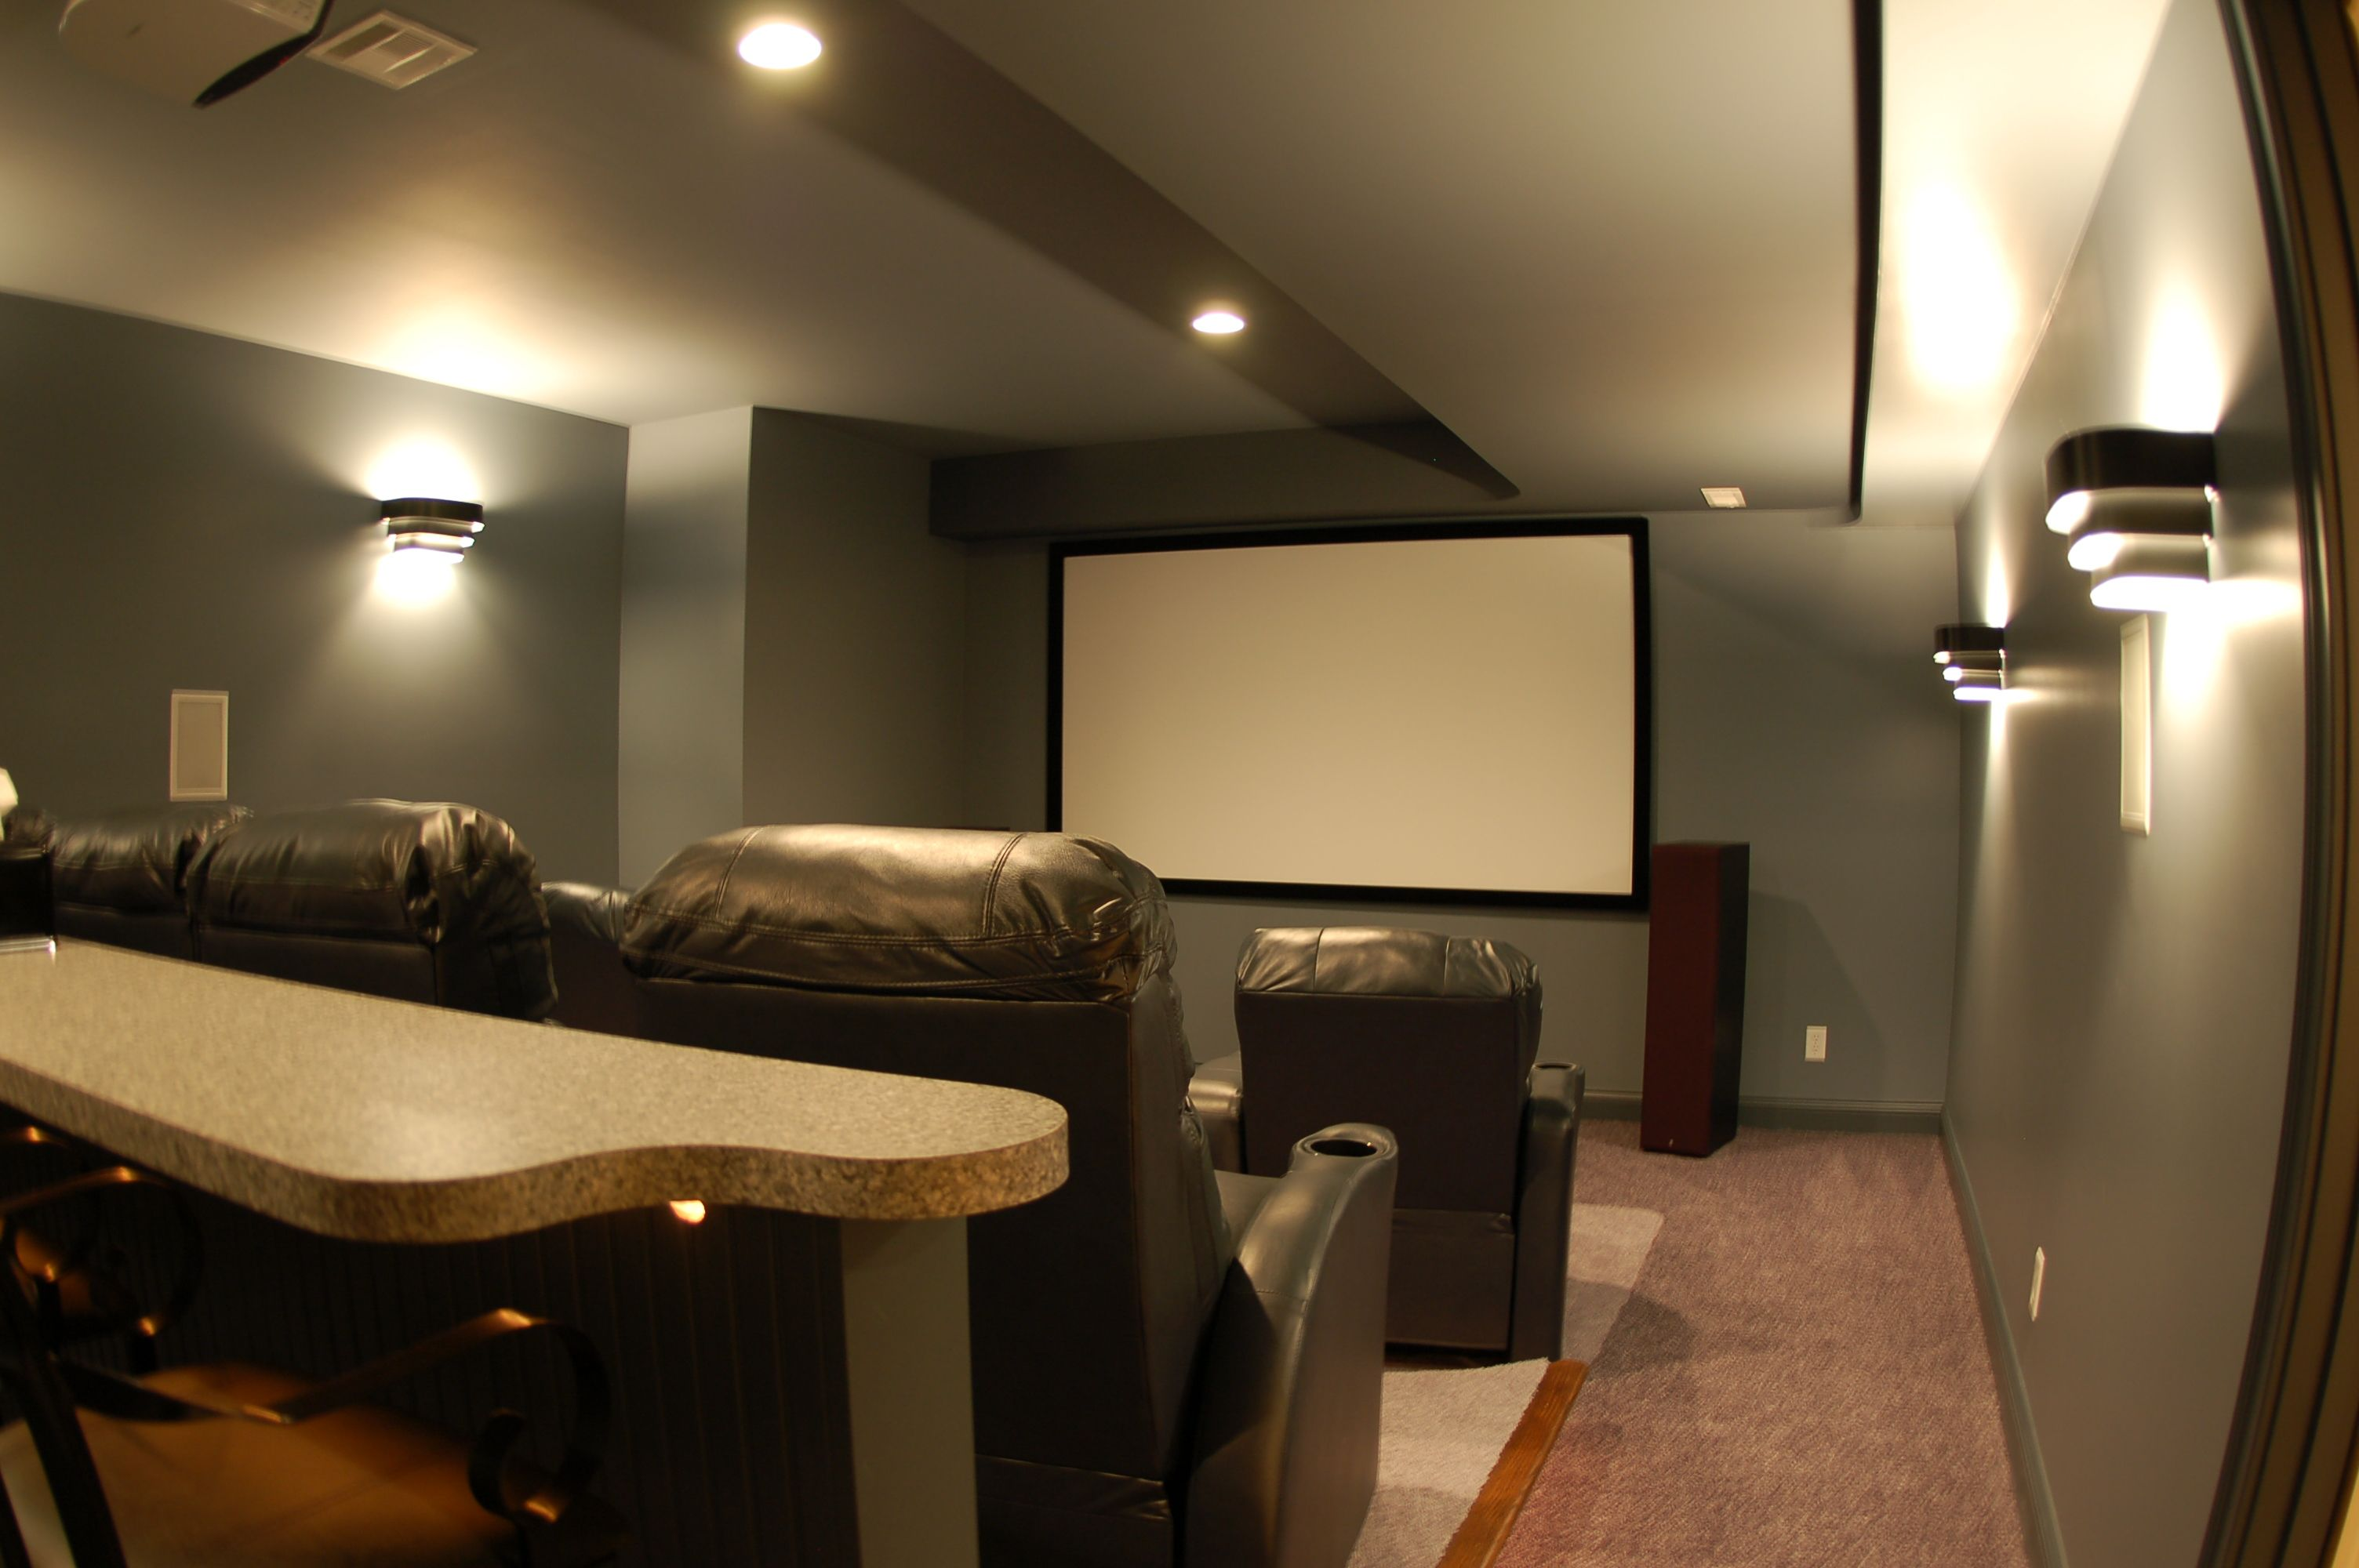 Step Up With Counter Behind Wall Sconces Small Home Theaters